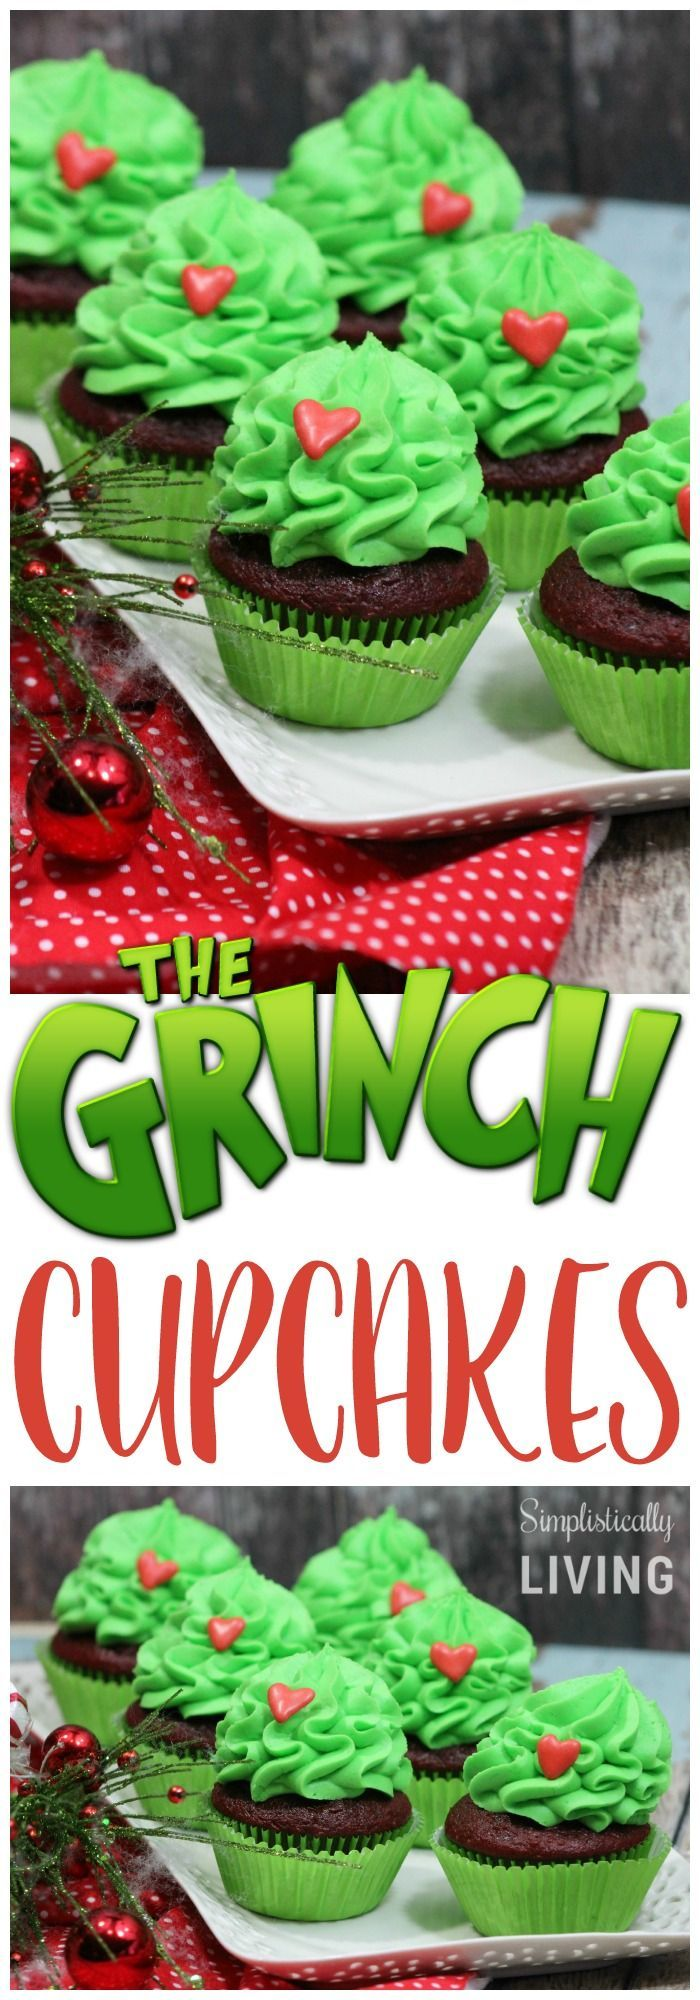 The Grinch Cupcakes Simplistically Living